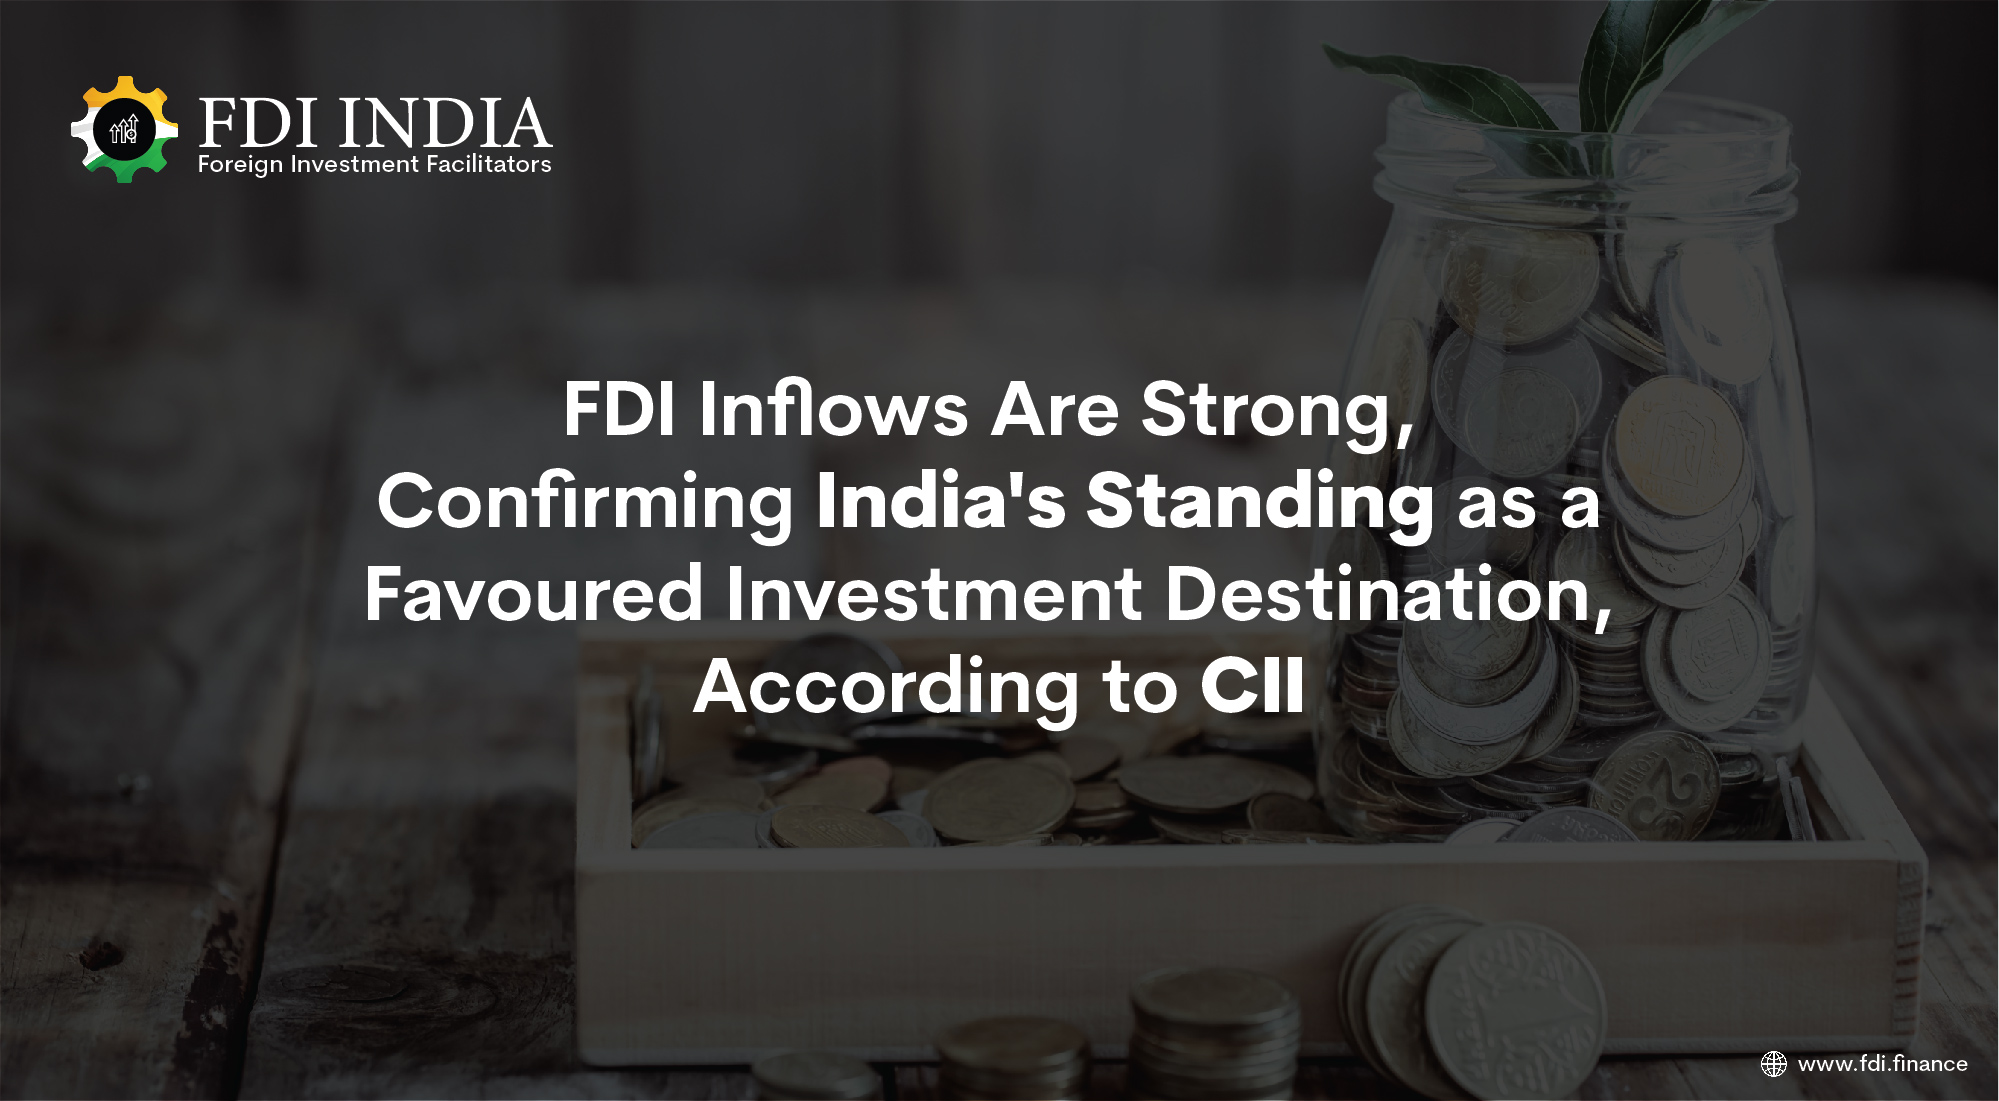 FDI Inflows Are Strong, Confirming India's Standing as a Favoured Investment Destination, According to CII